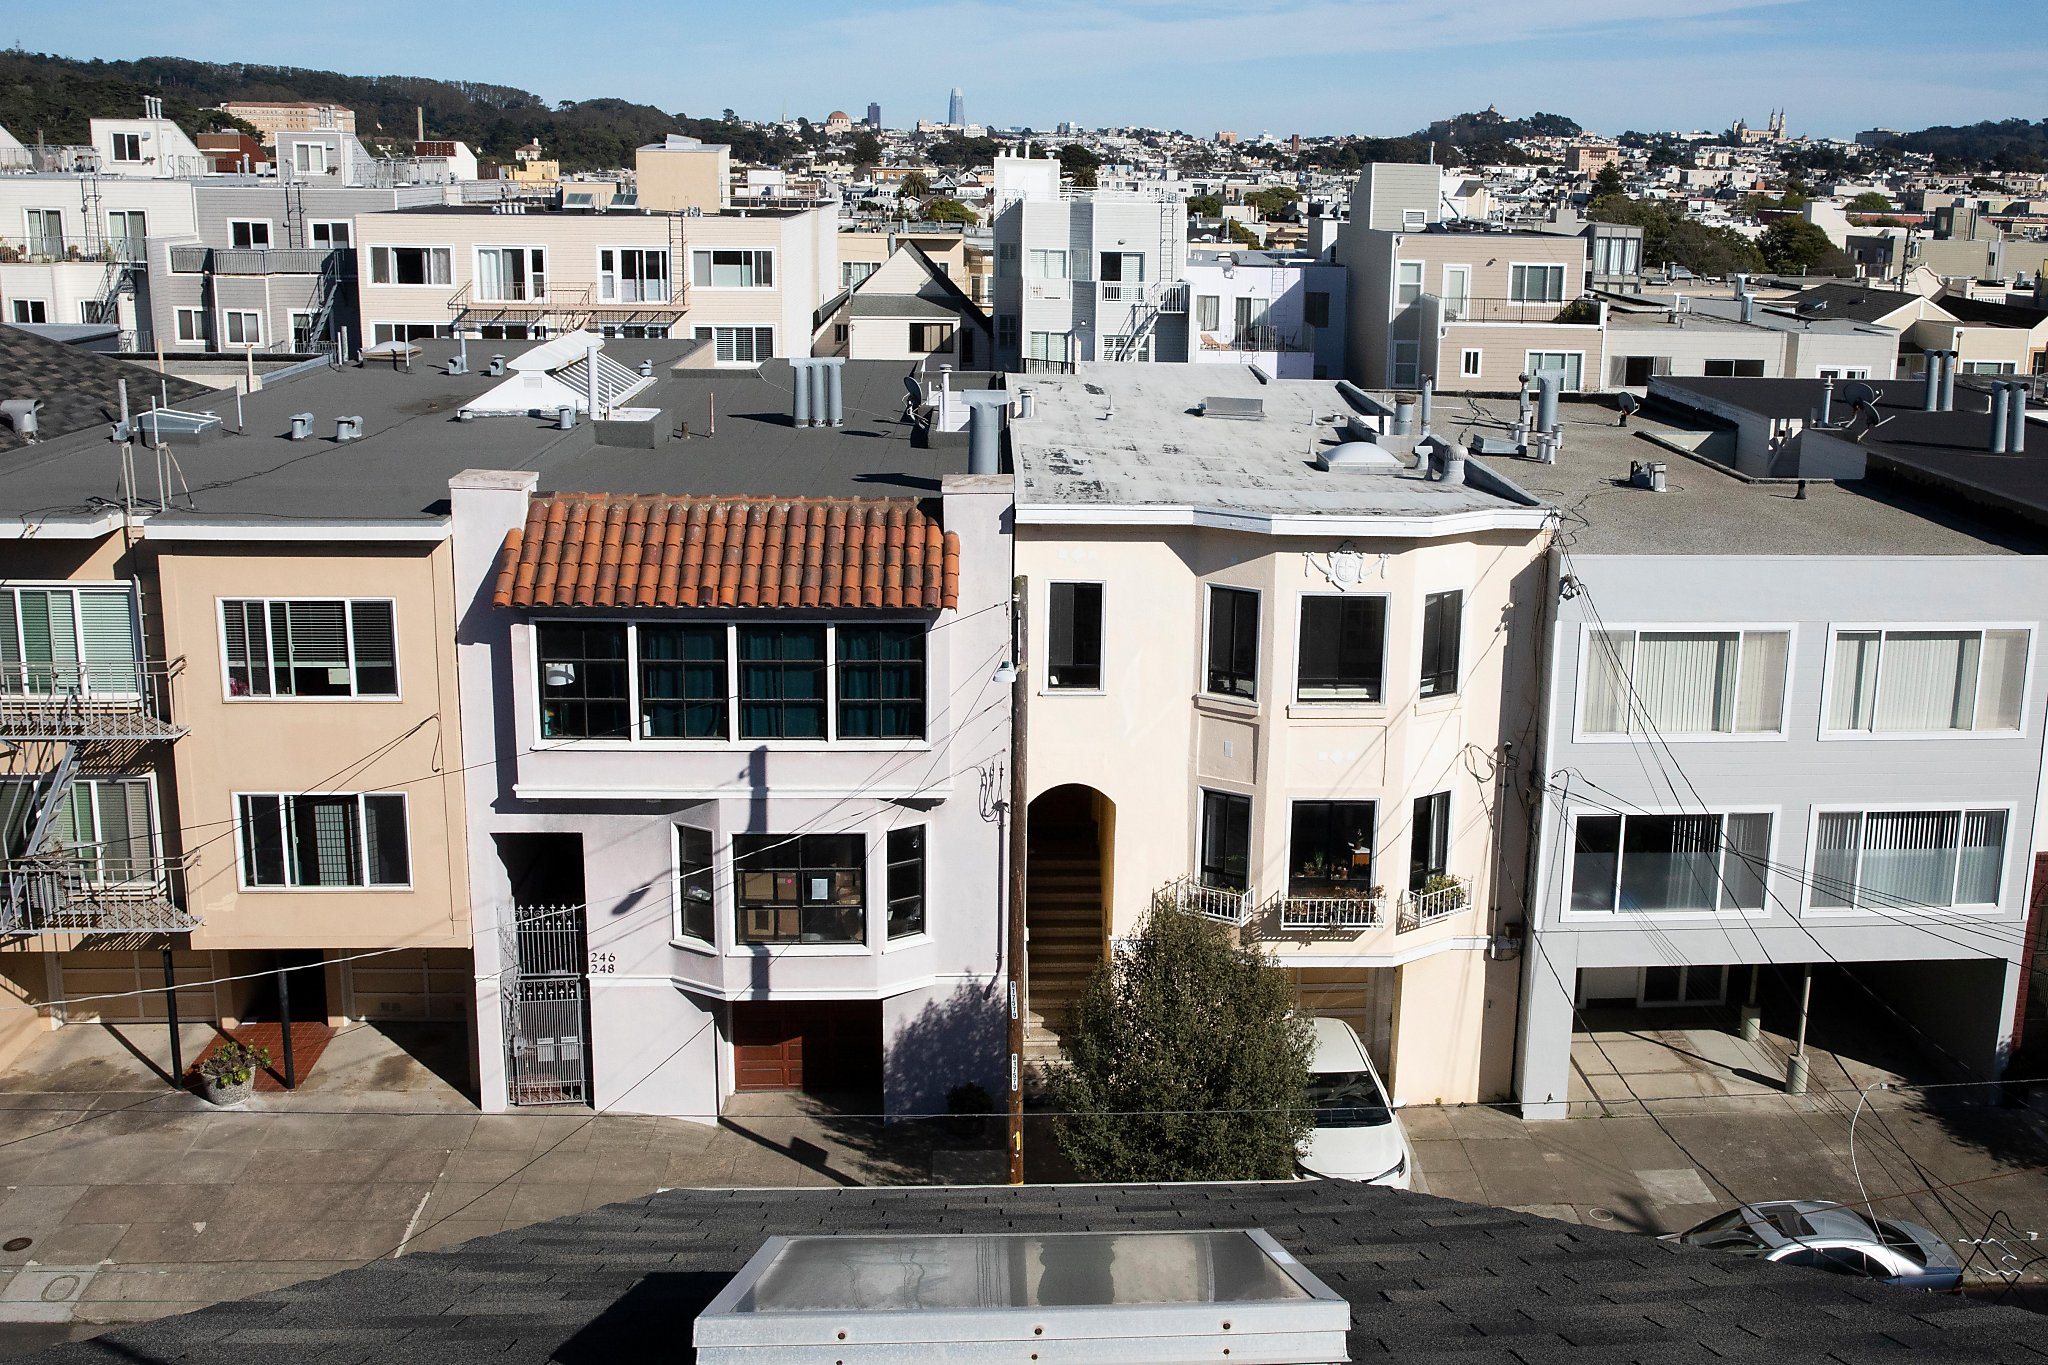 Bay Area cities want to end single-family home zoning, but will it create more housing?